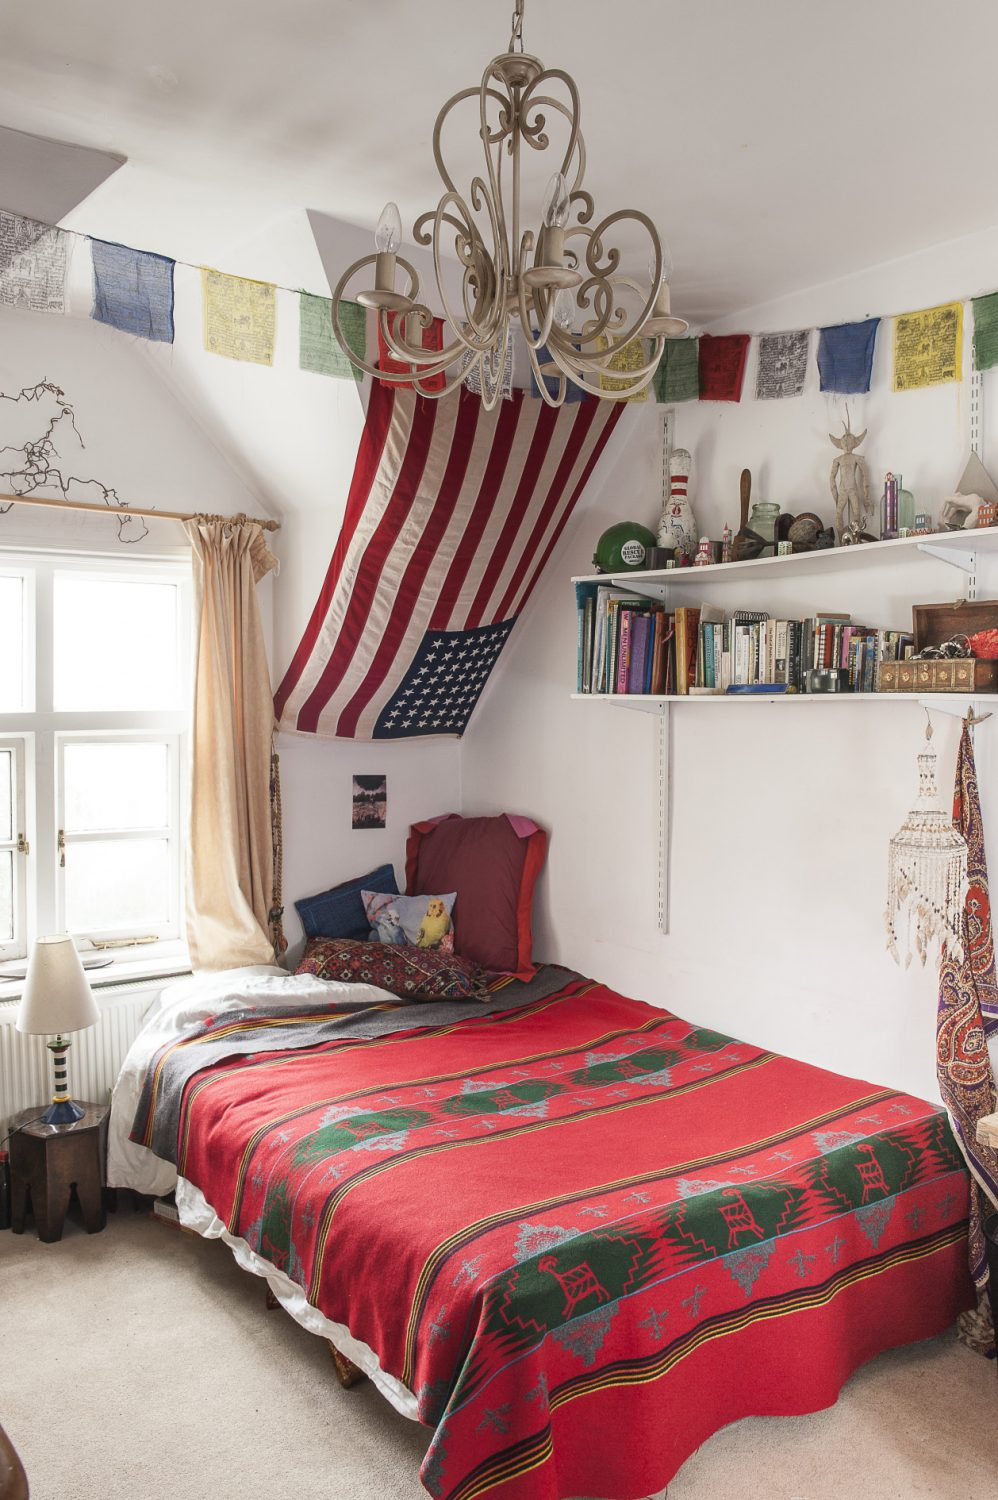 Alli's 23-year-old stepdaughter Hannah has been responsible for the décor in her own room which reflects her love of ethnic fabrics, art and curios